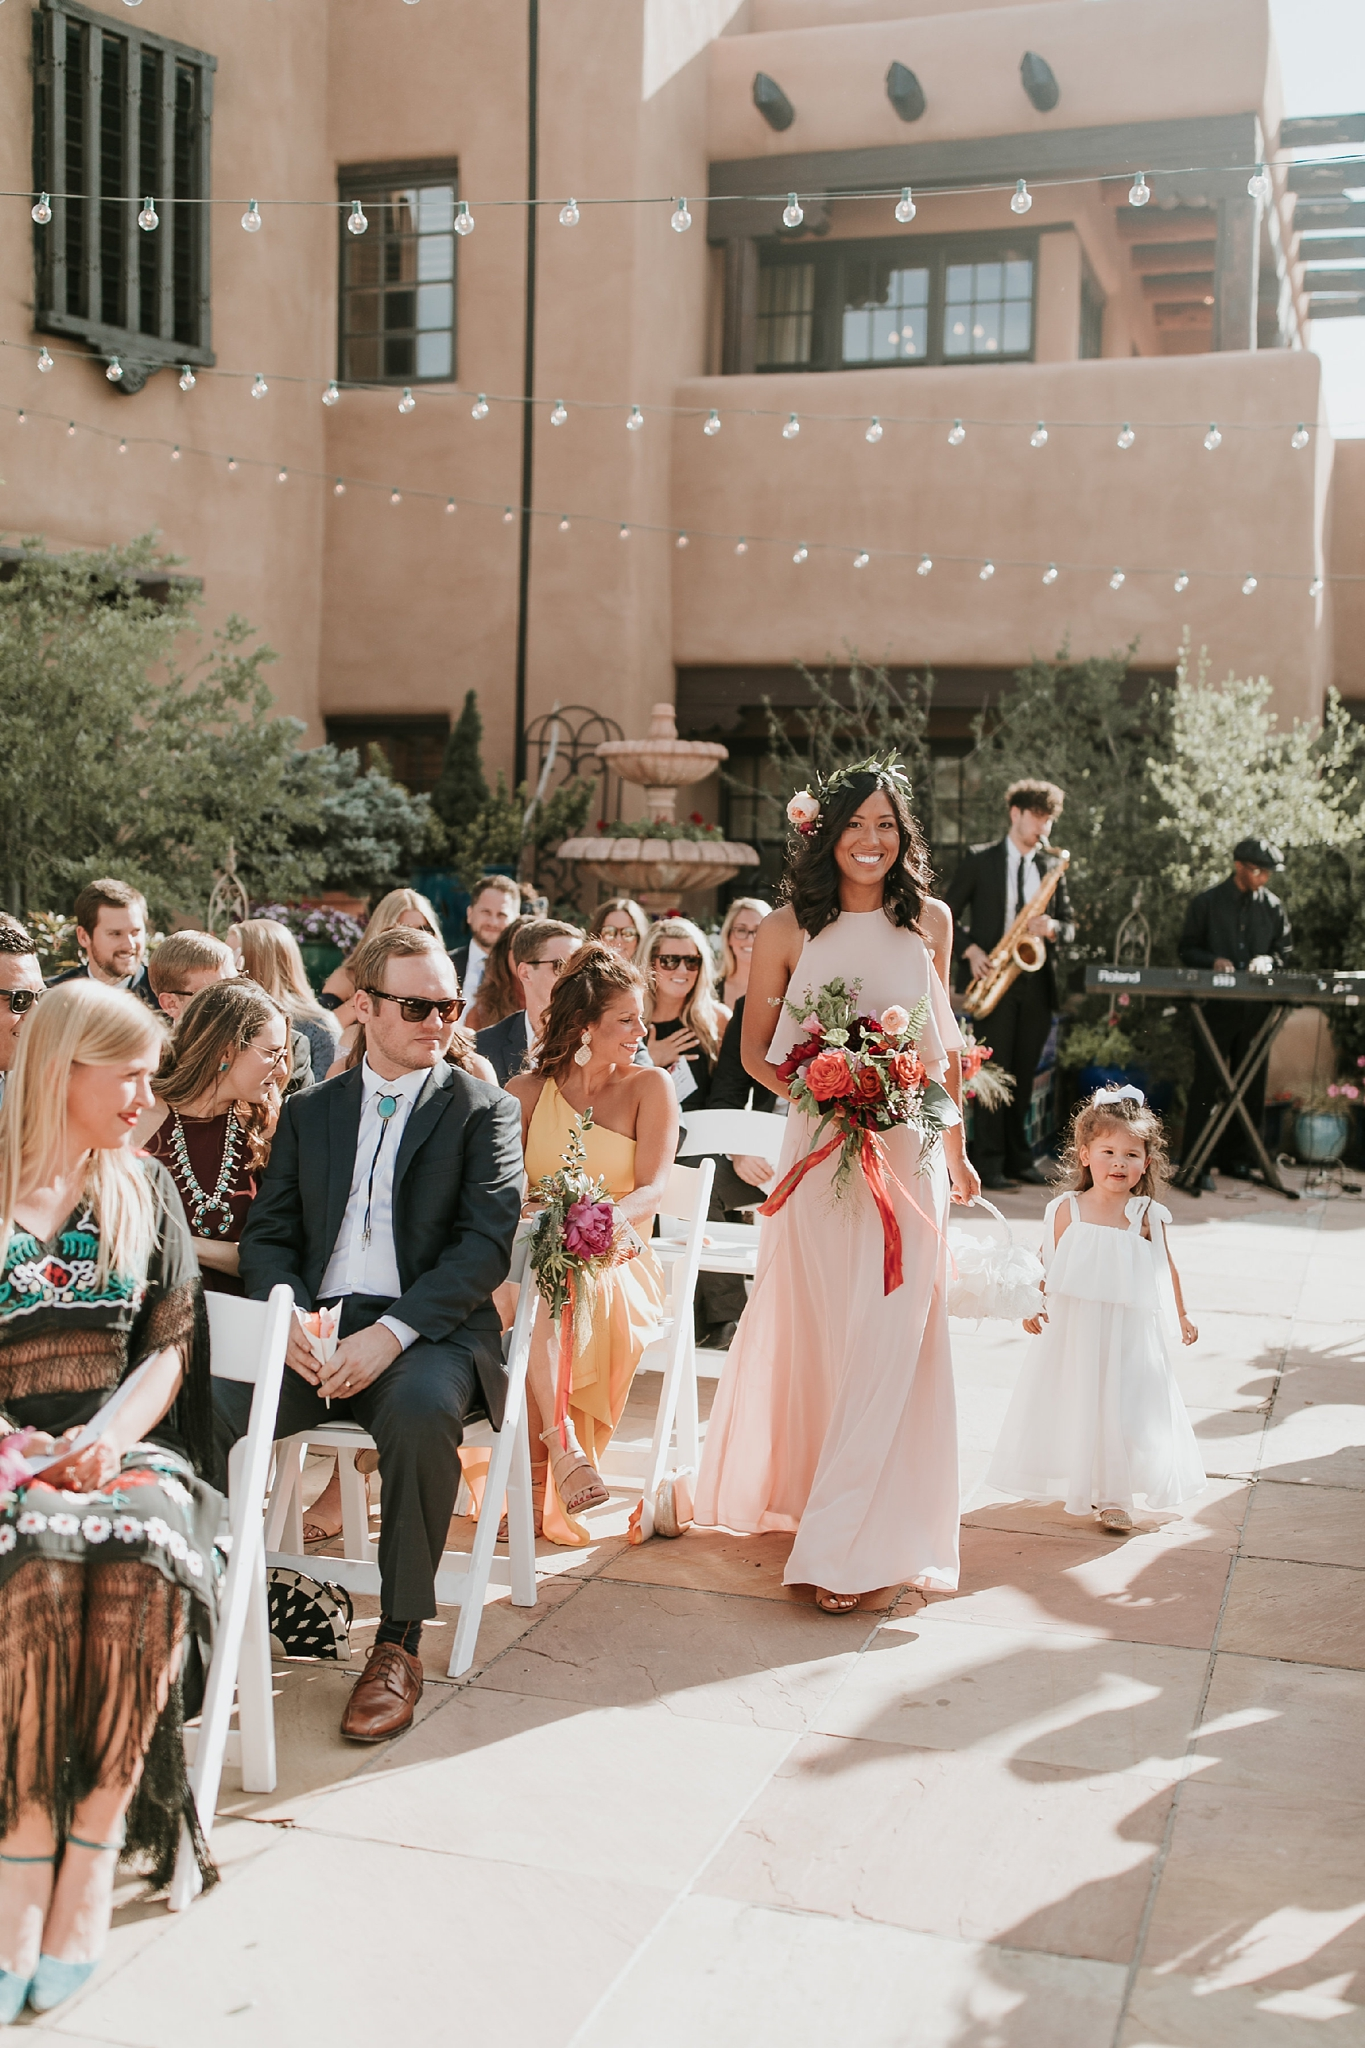 Alicia+lucia+photography+-+albuquerque+wedding+photographer+-+santa+fe+wedding+photography+-+new+mexico+wedding+photographer+-+new+mexico+wedding+-+flower+girl+-+wedding+flower+girl_0039.jpg